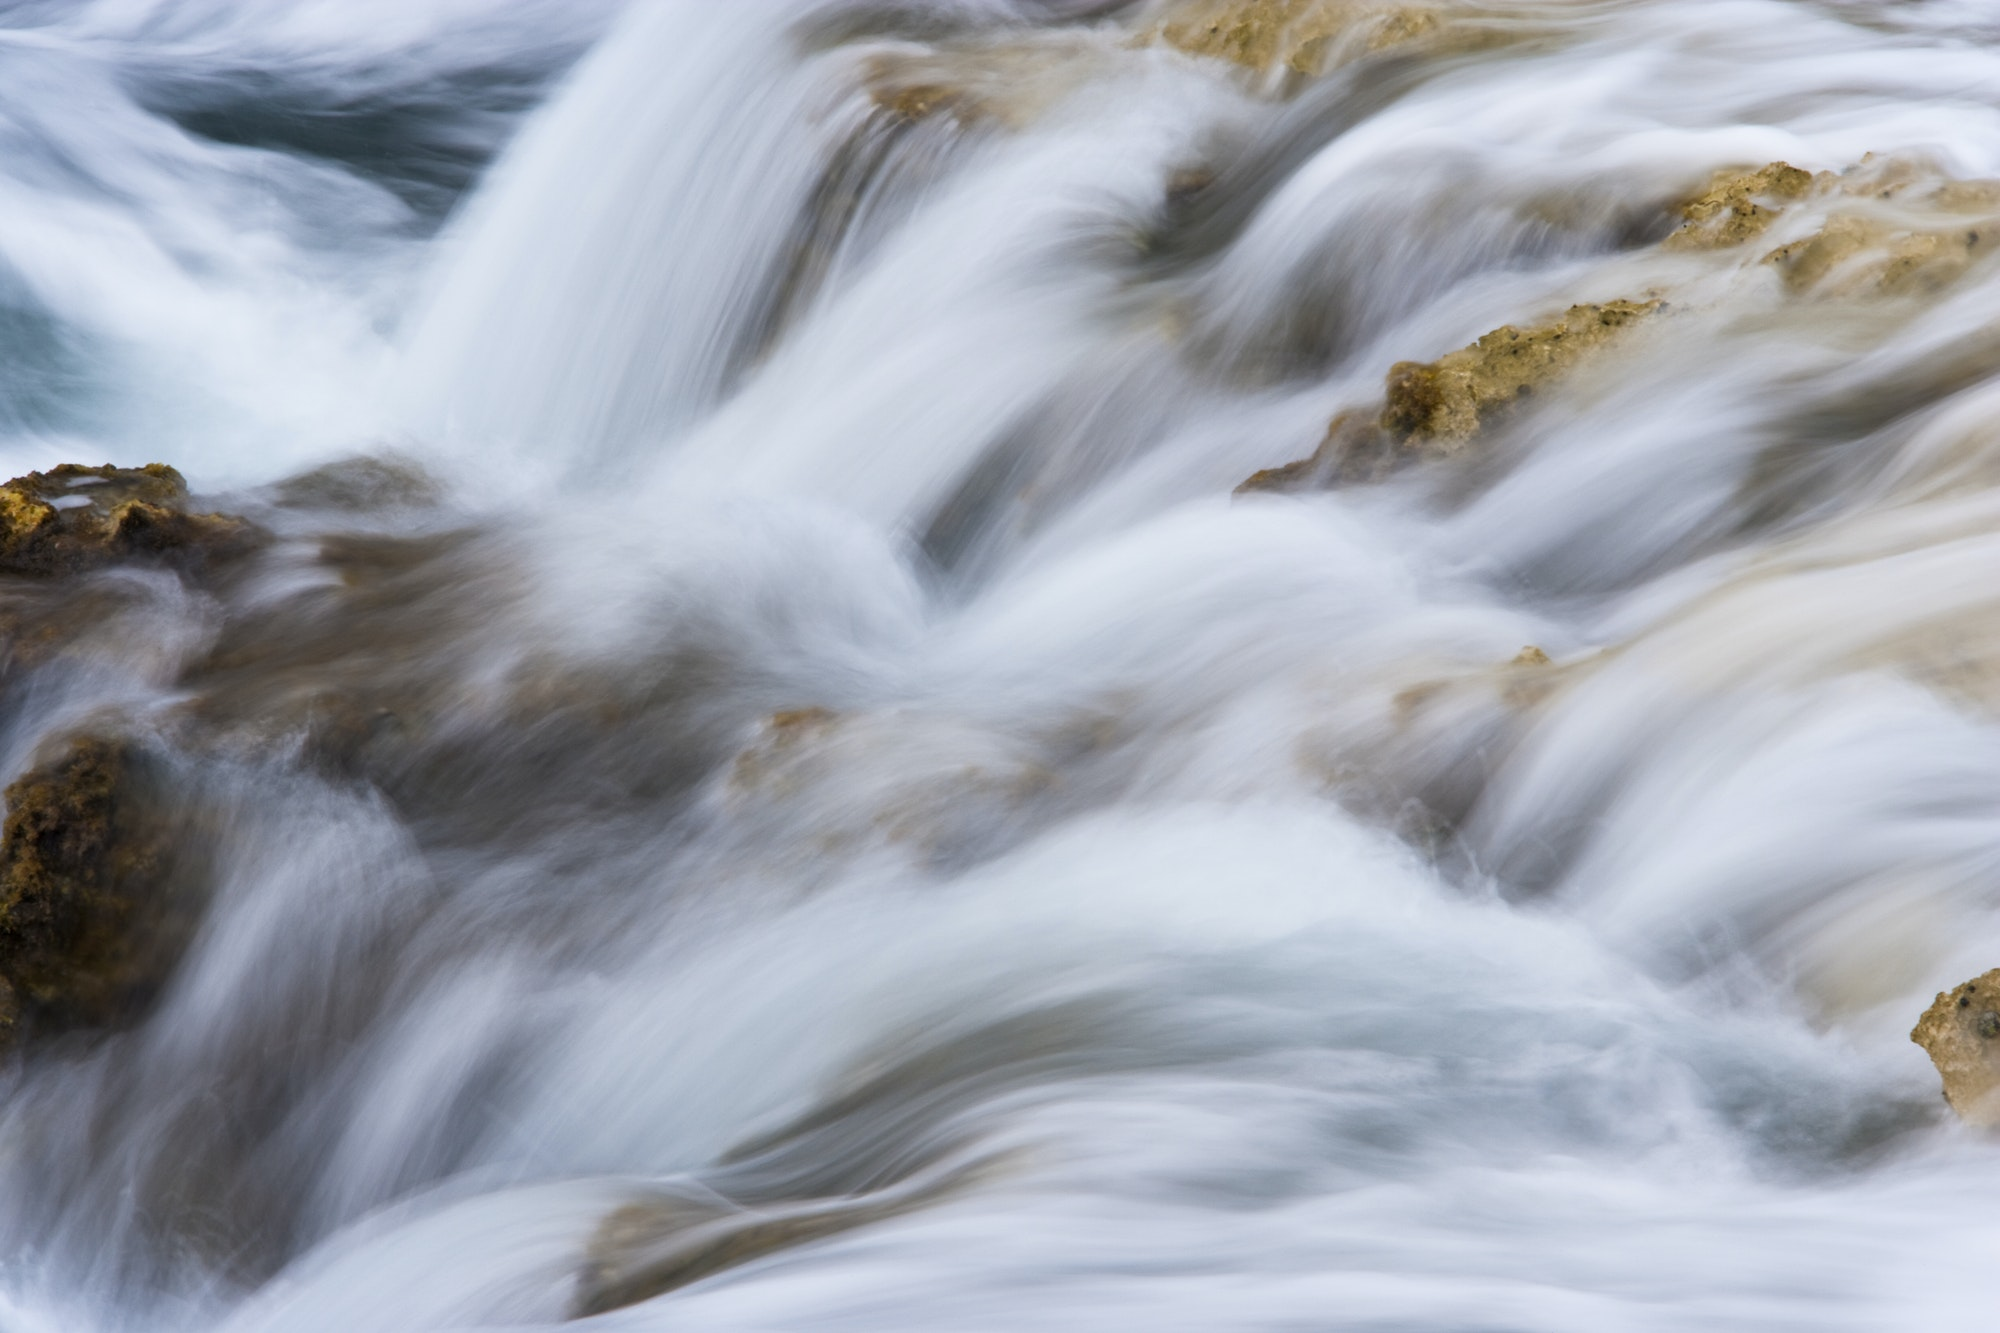 Sea water tides flowing over rocks, time lapse photography,